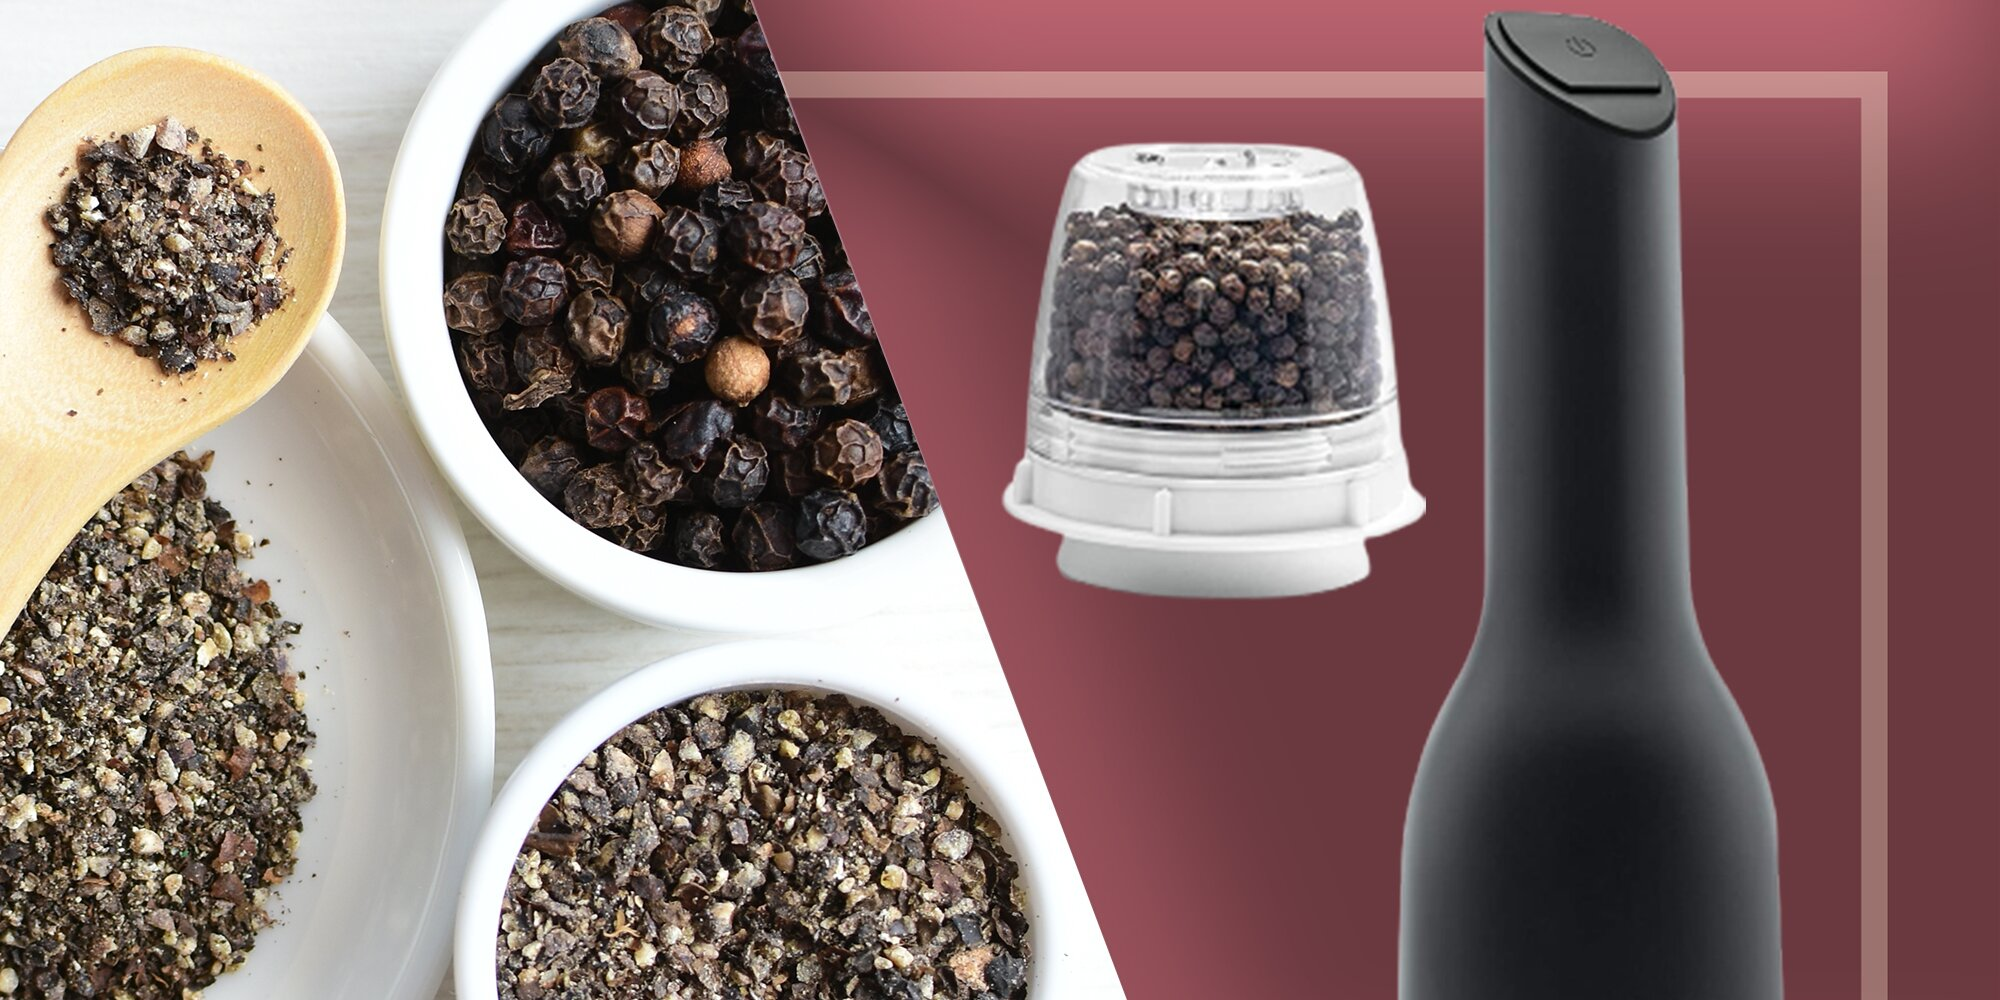 This Electronic Spice Mill Makes Cooking with Whole Spices a Snap